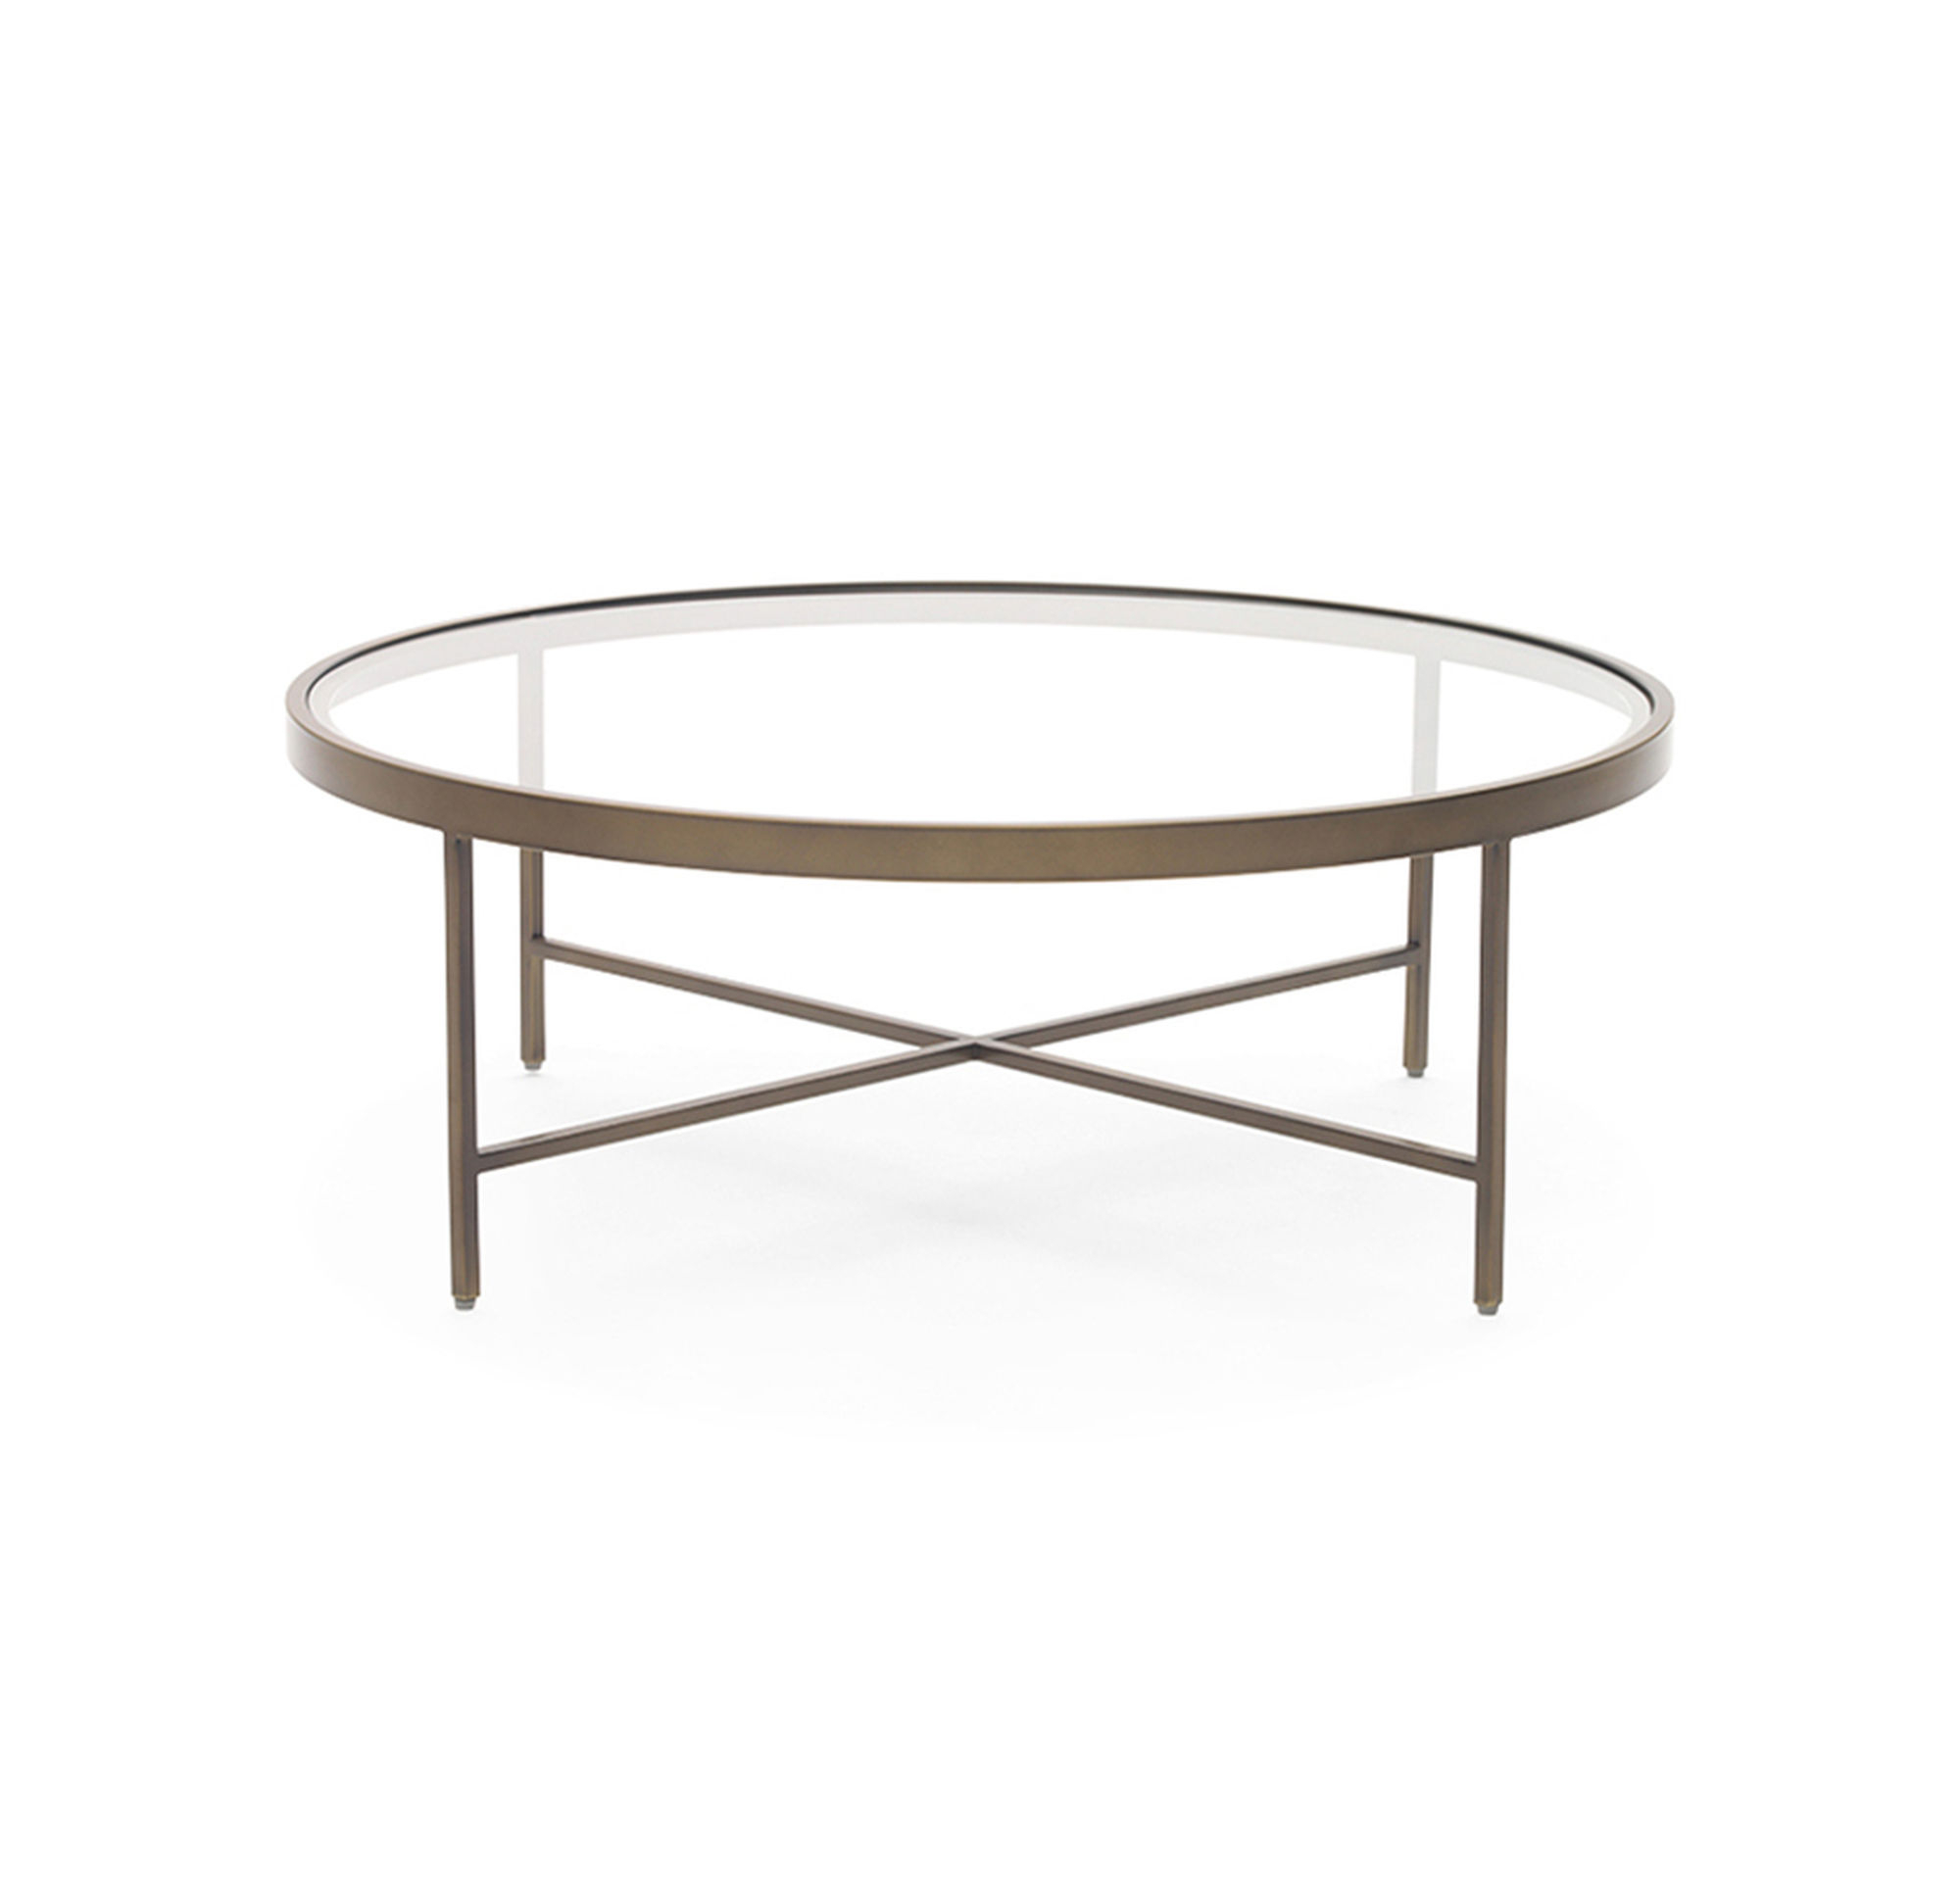 2019 Vienna Antique Brass Round Cocktail Table Ctb End Stainless Steel For Antique Brass Coffee Tables (View 1 of 20)